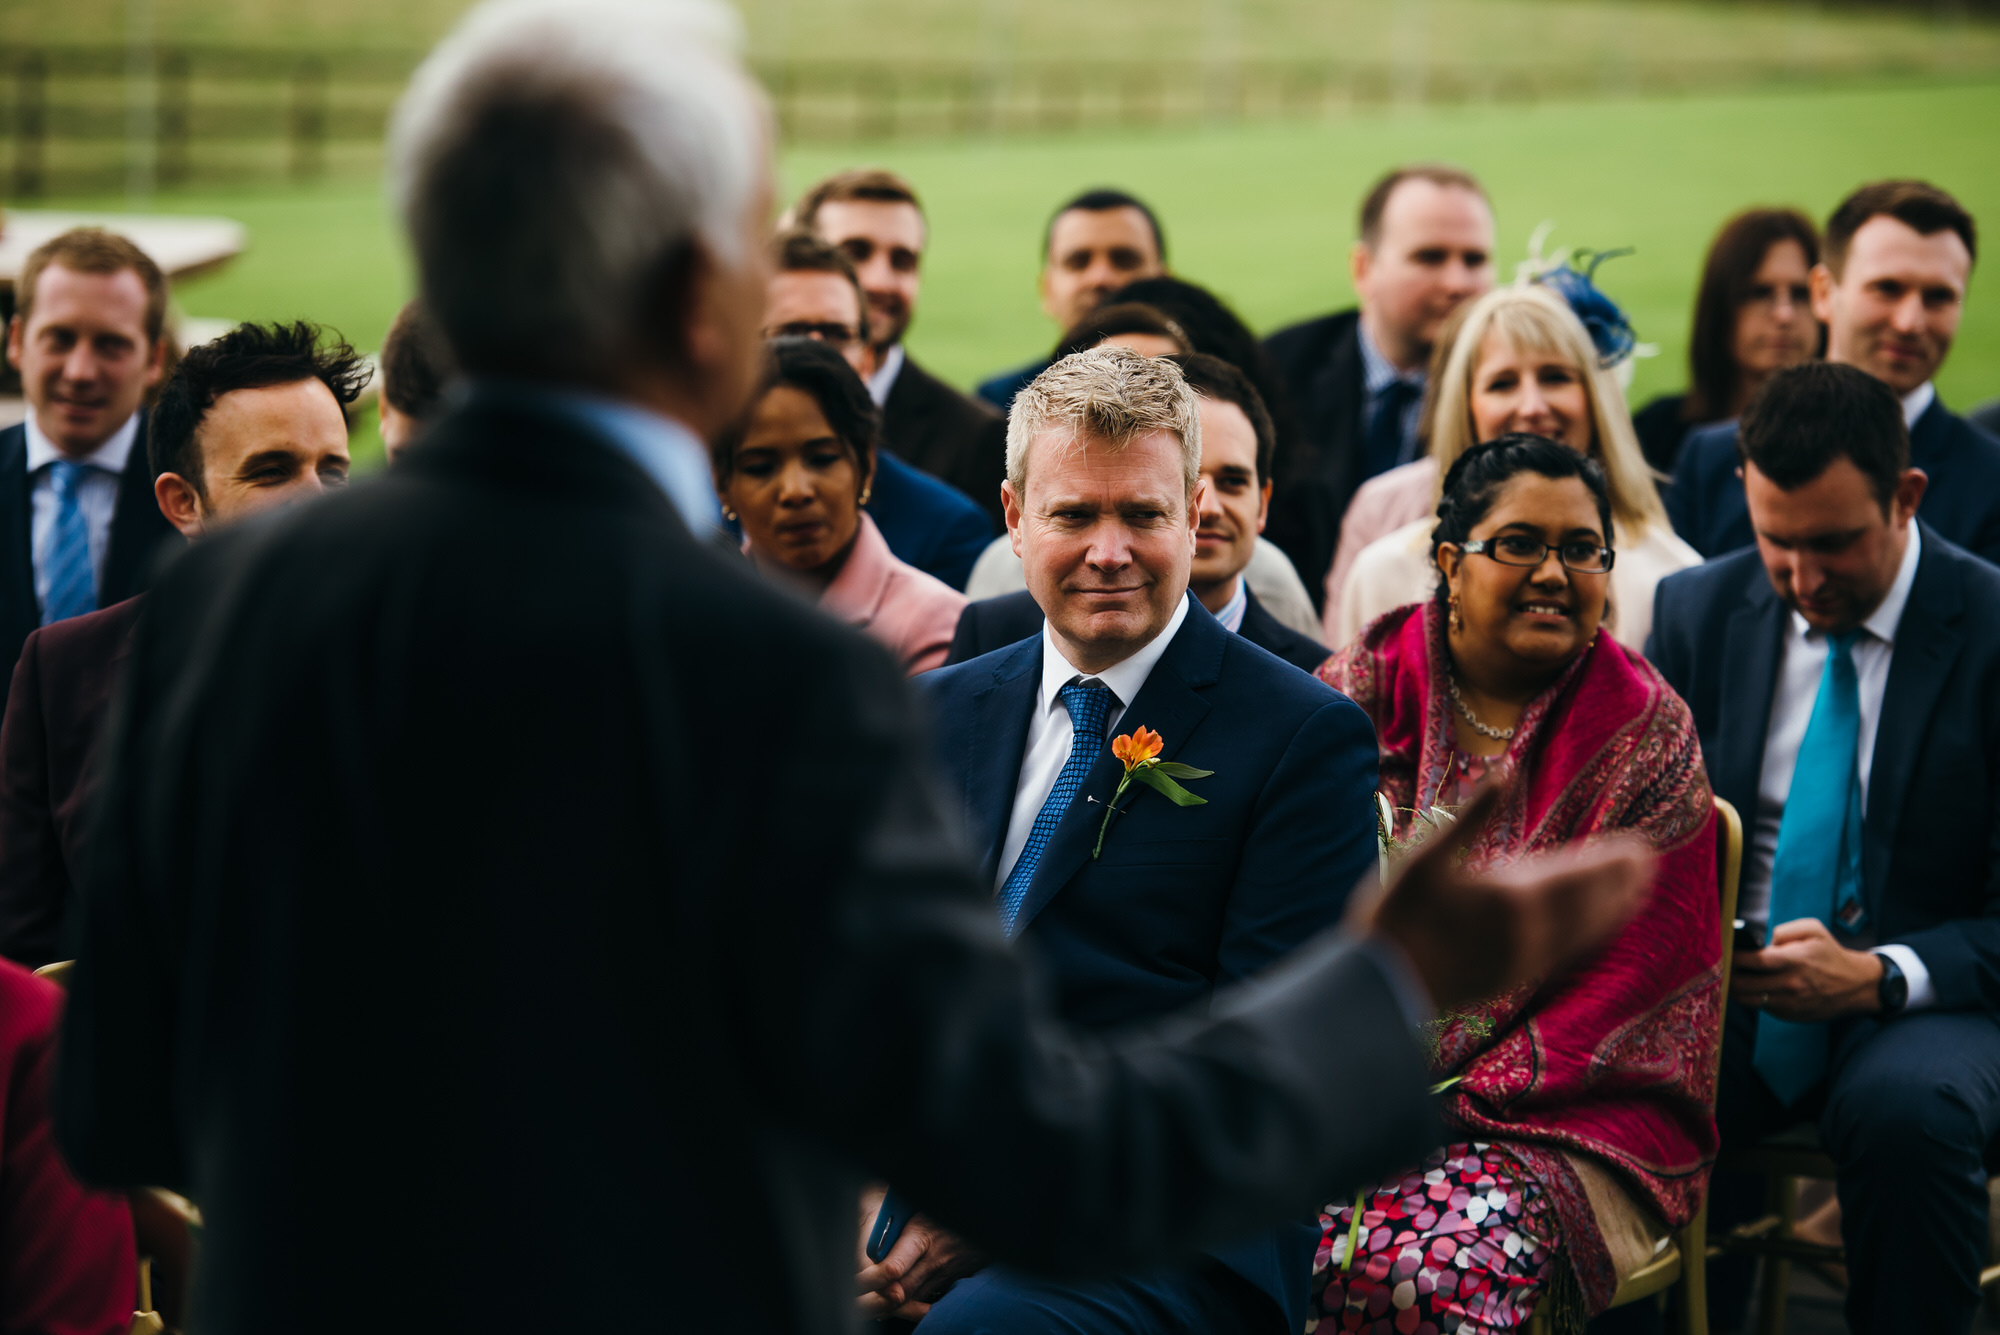 Heaton house wedding photography 033